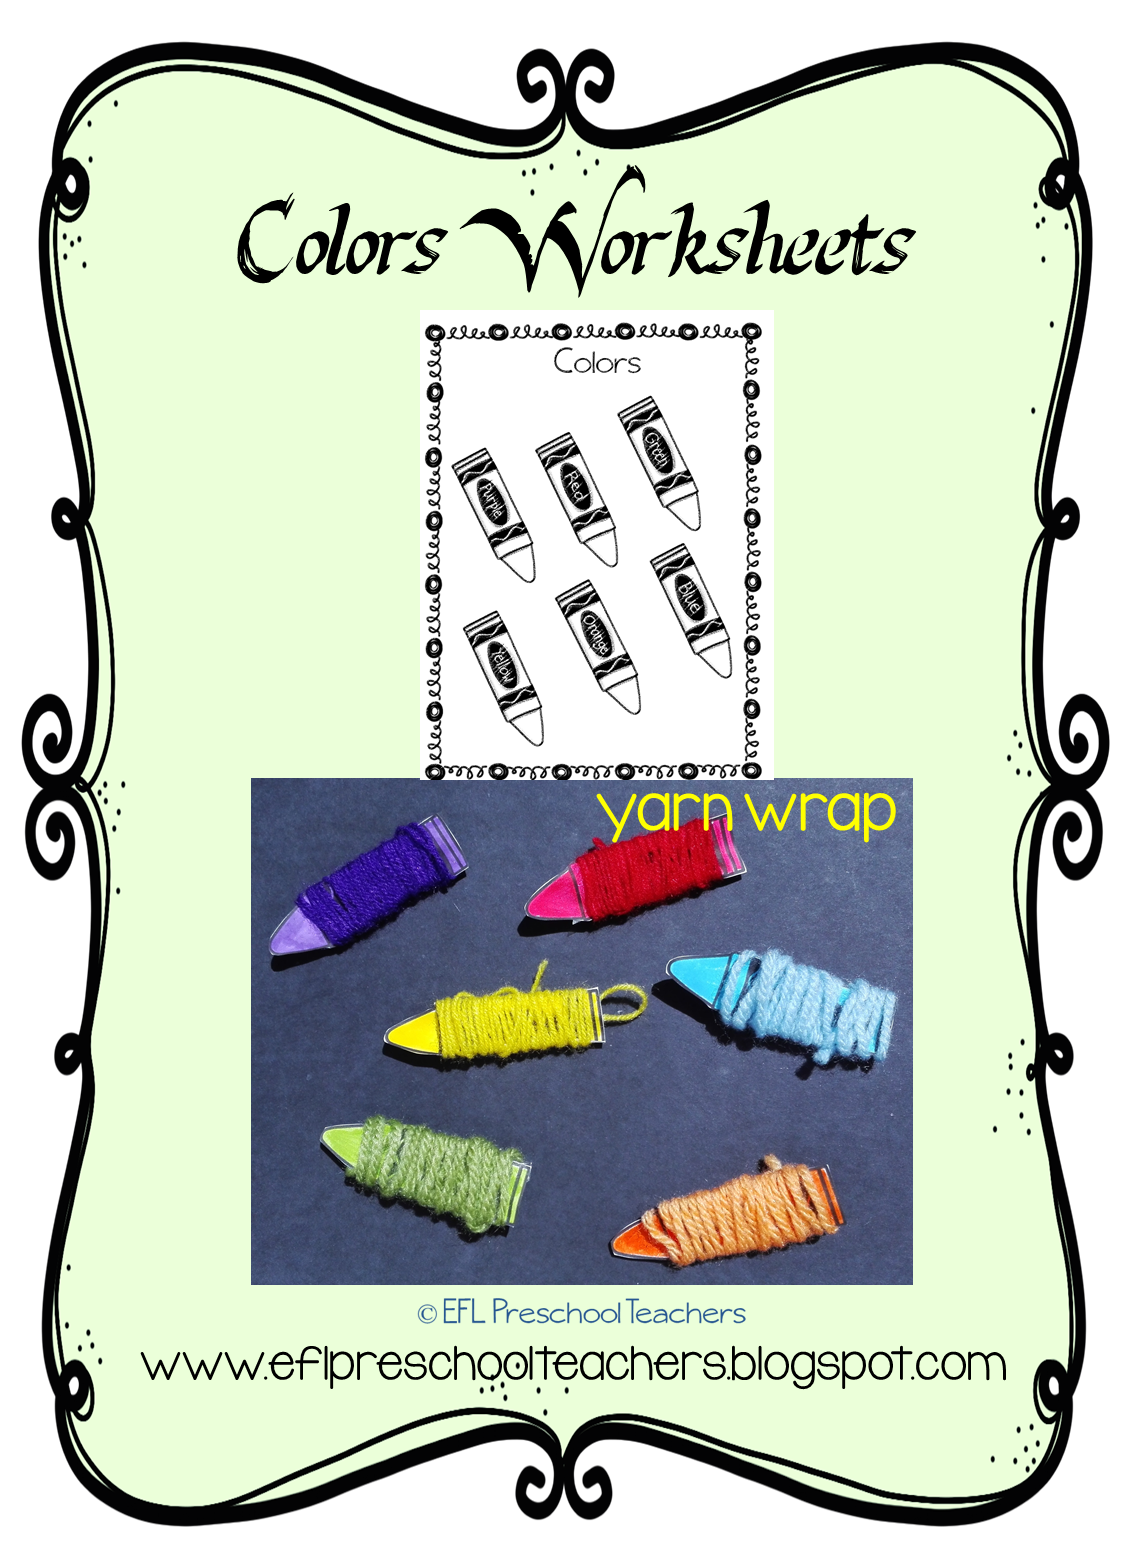 Esl Efl Preschool Teachers Color Worksheets